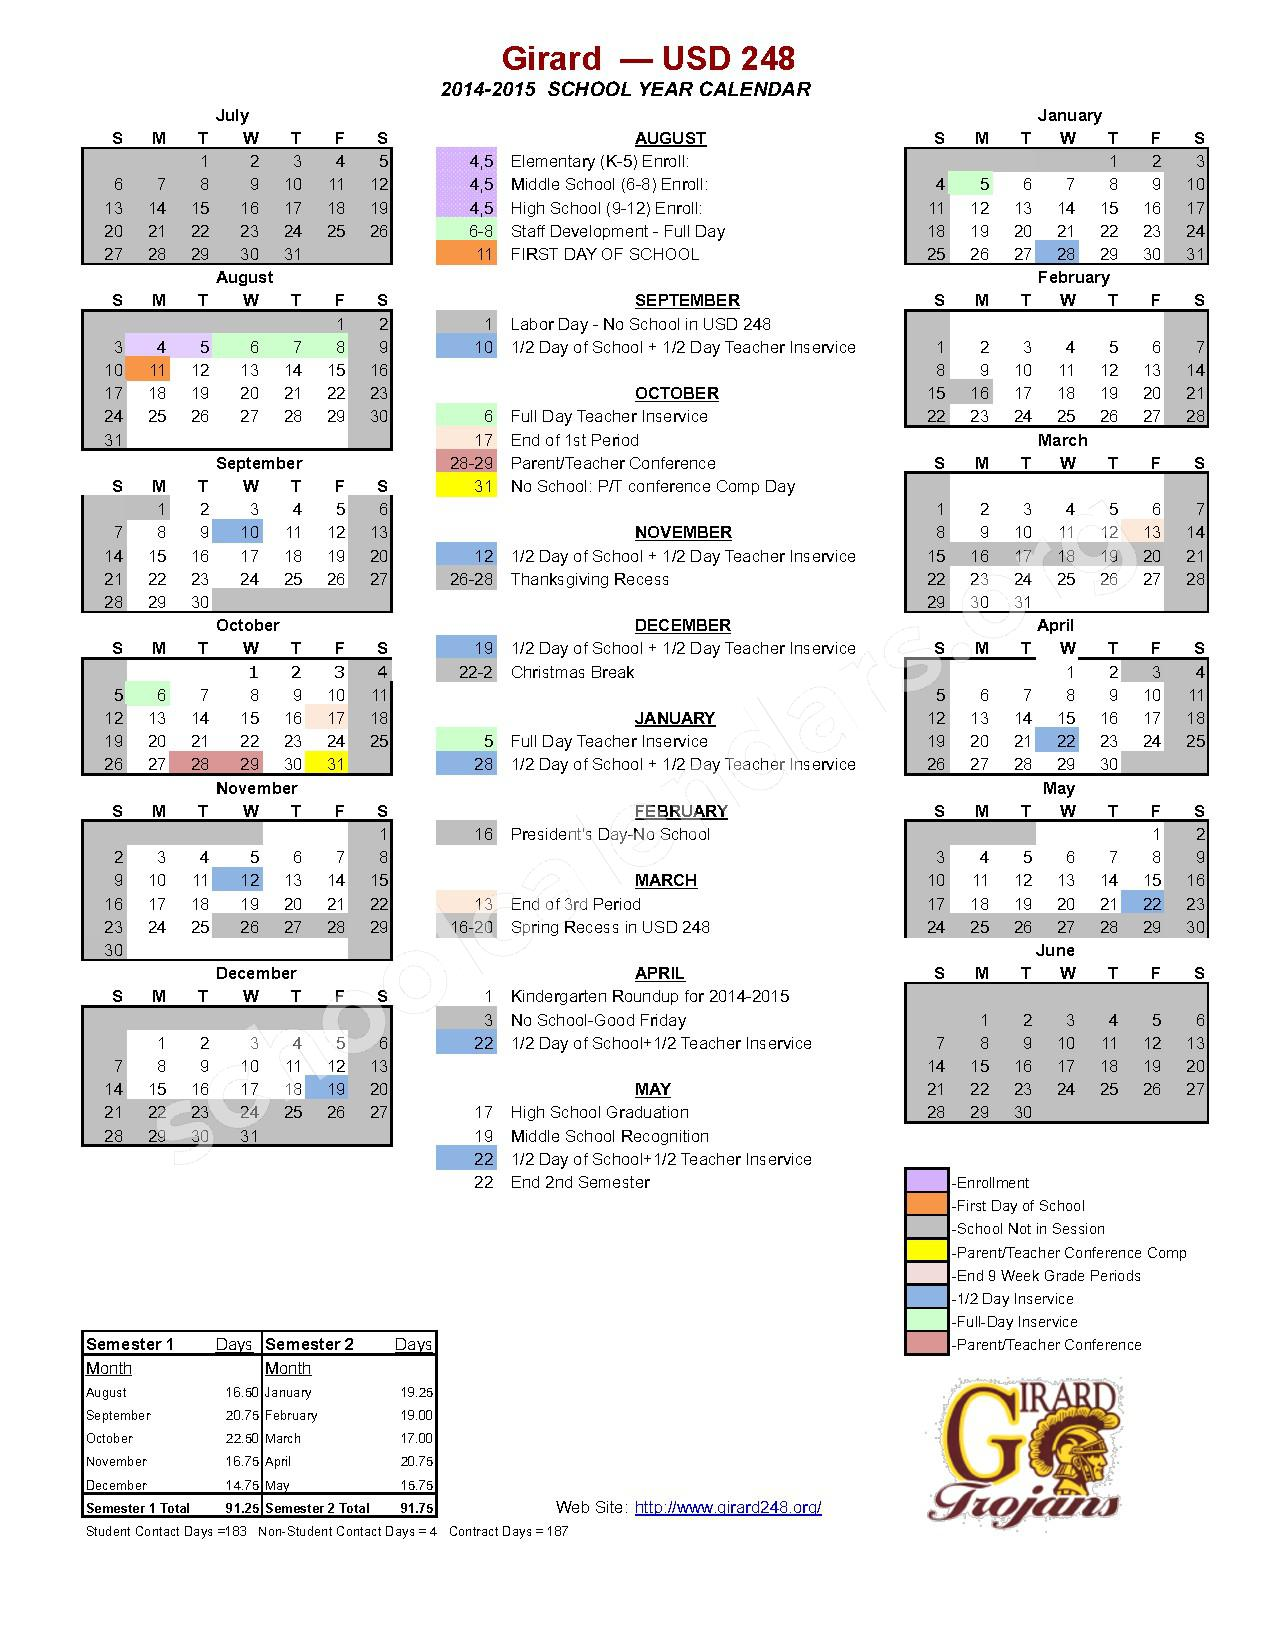 2014 - 2015 School Calendar – Girard Unified School District 248 – page 1